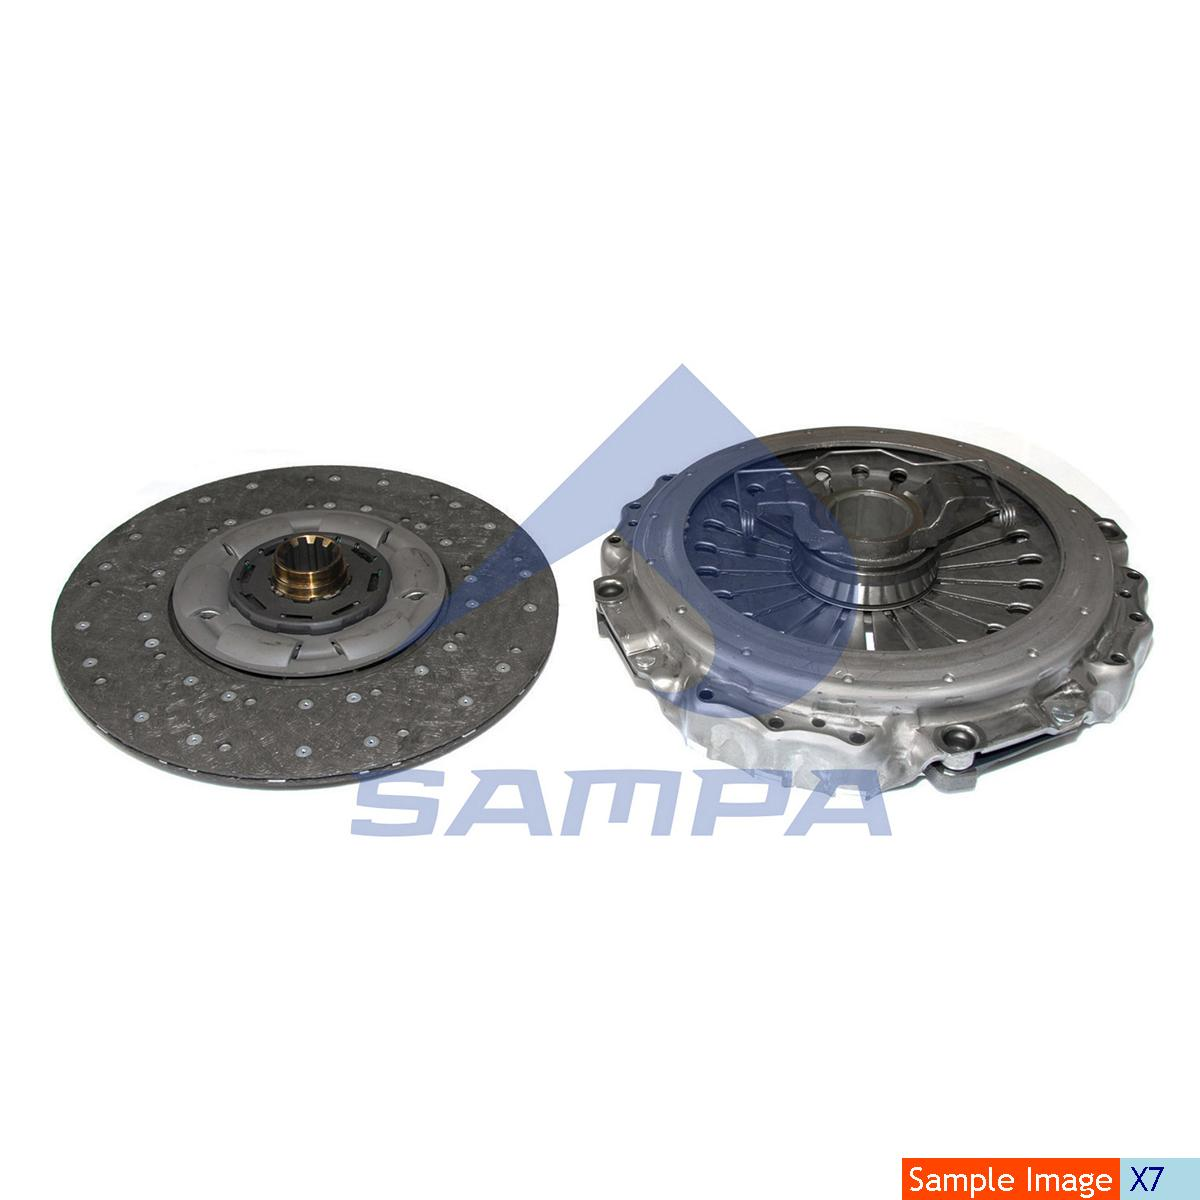 Repair Kit, Clutch, R.V.I., Clutch